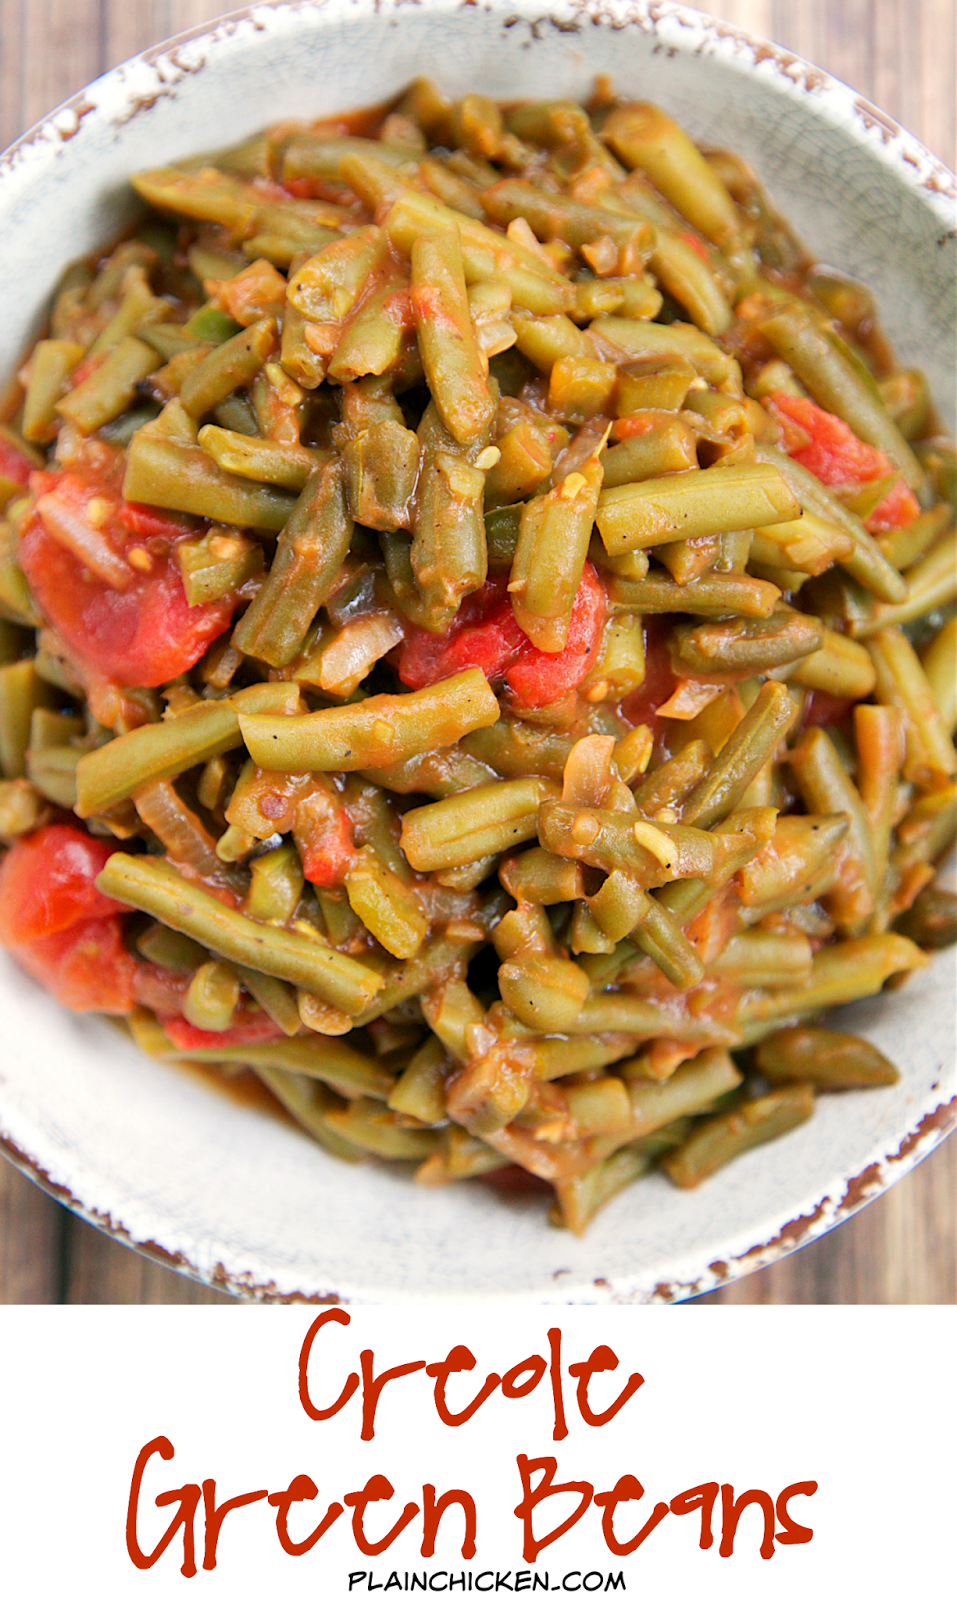 Creole Green Beans Recipe - transform canned green beans into something amazing! Green beans, bacon,onion, green pepper, brown sugar, mustard, stewed tomatoes and Worcestershire sauce. SO good! I could make a meal out of these green beans!